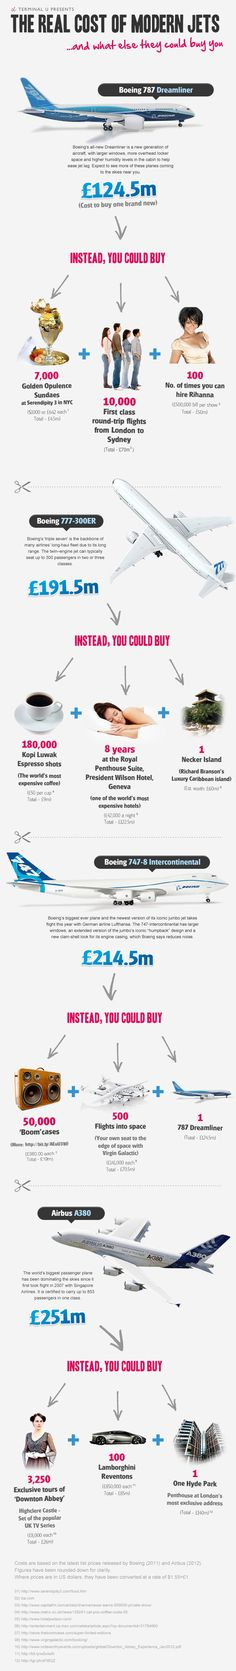 The real cost of modern airliners (and what you could buy instead)